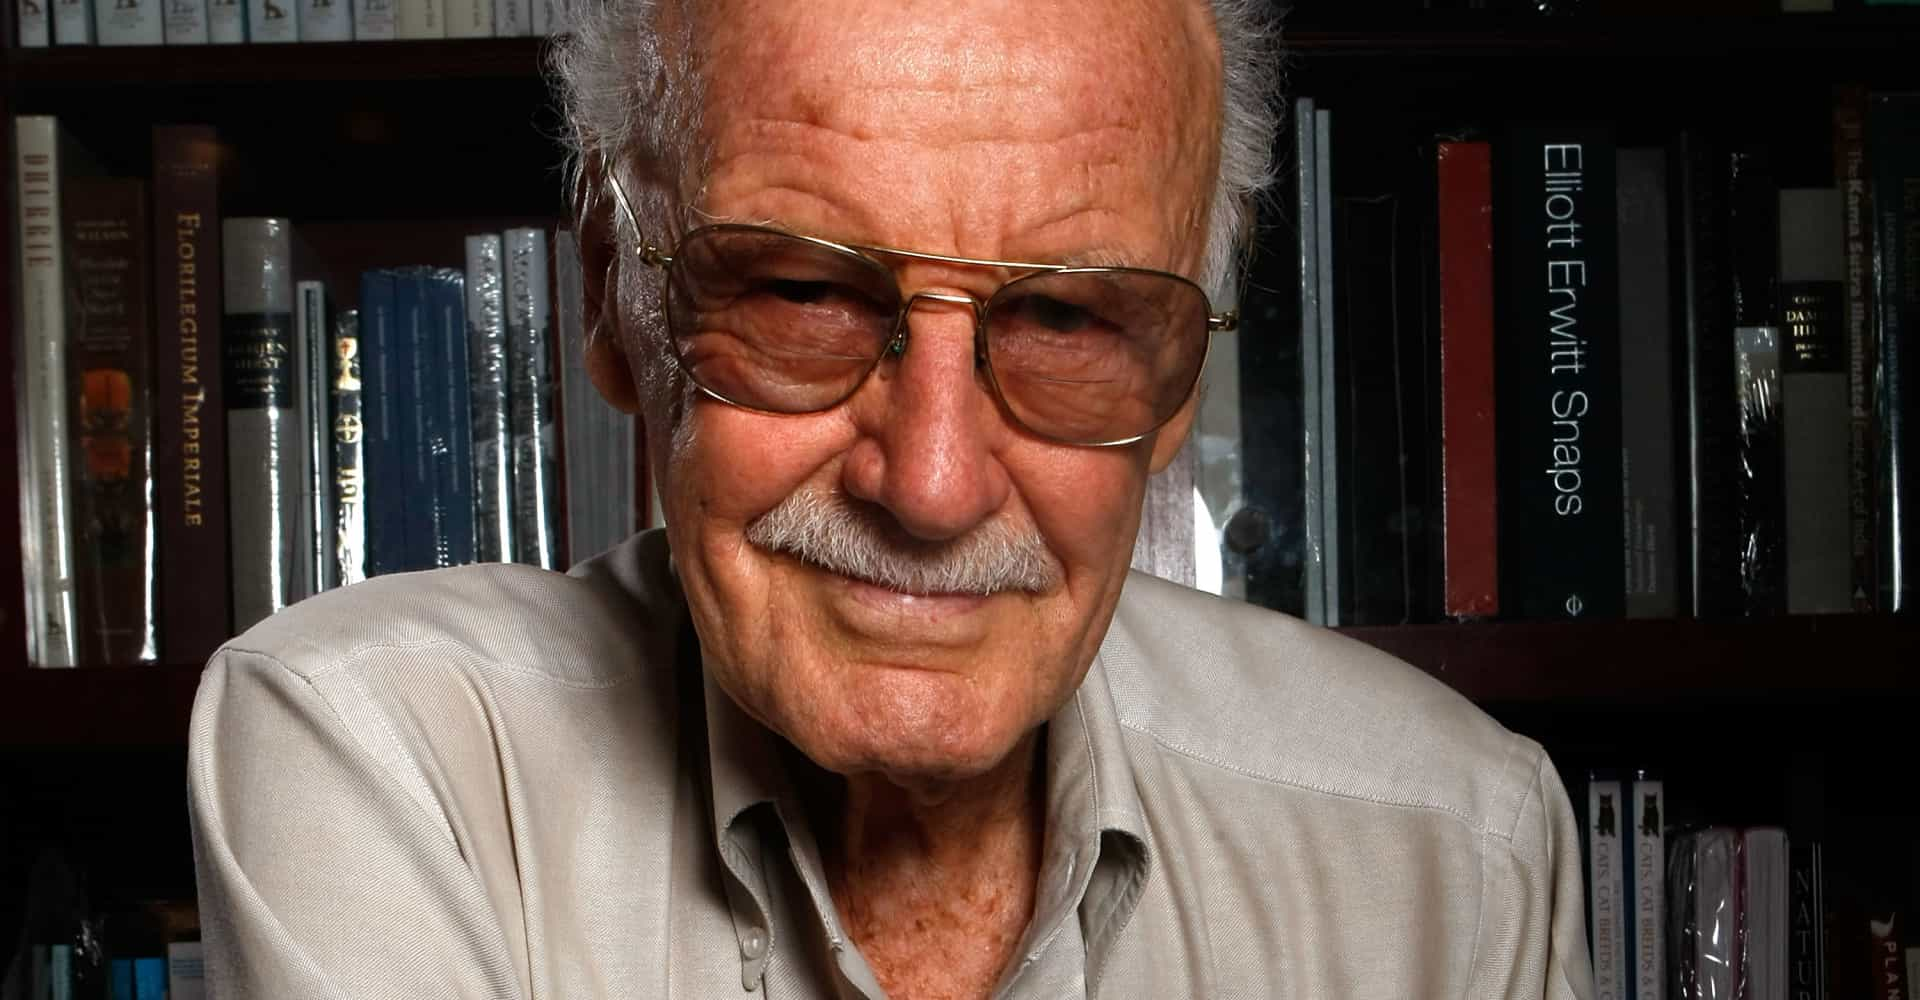 Marvel Comics Creator Stan Lee dead at 95